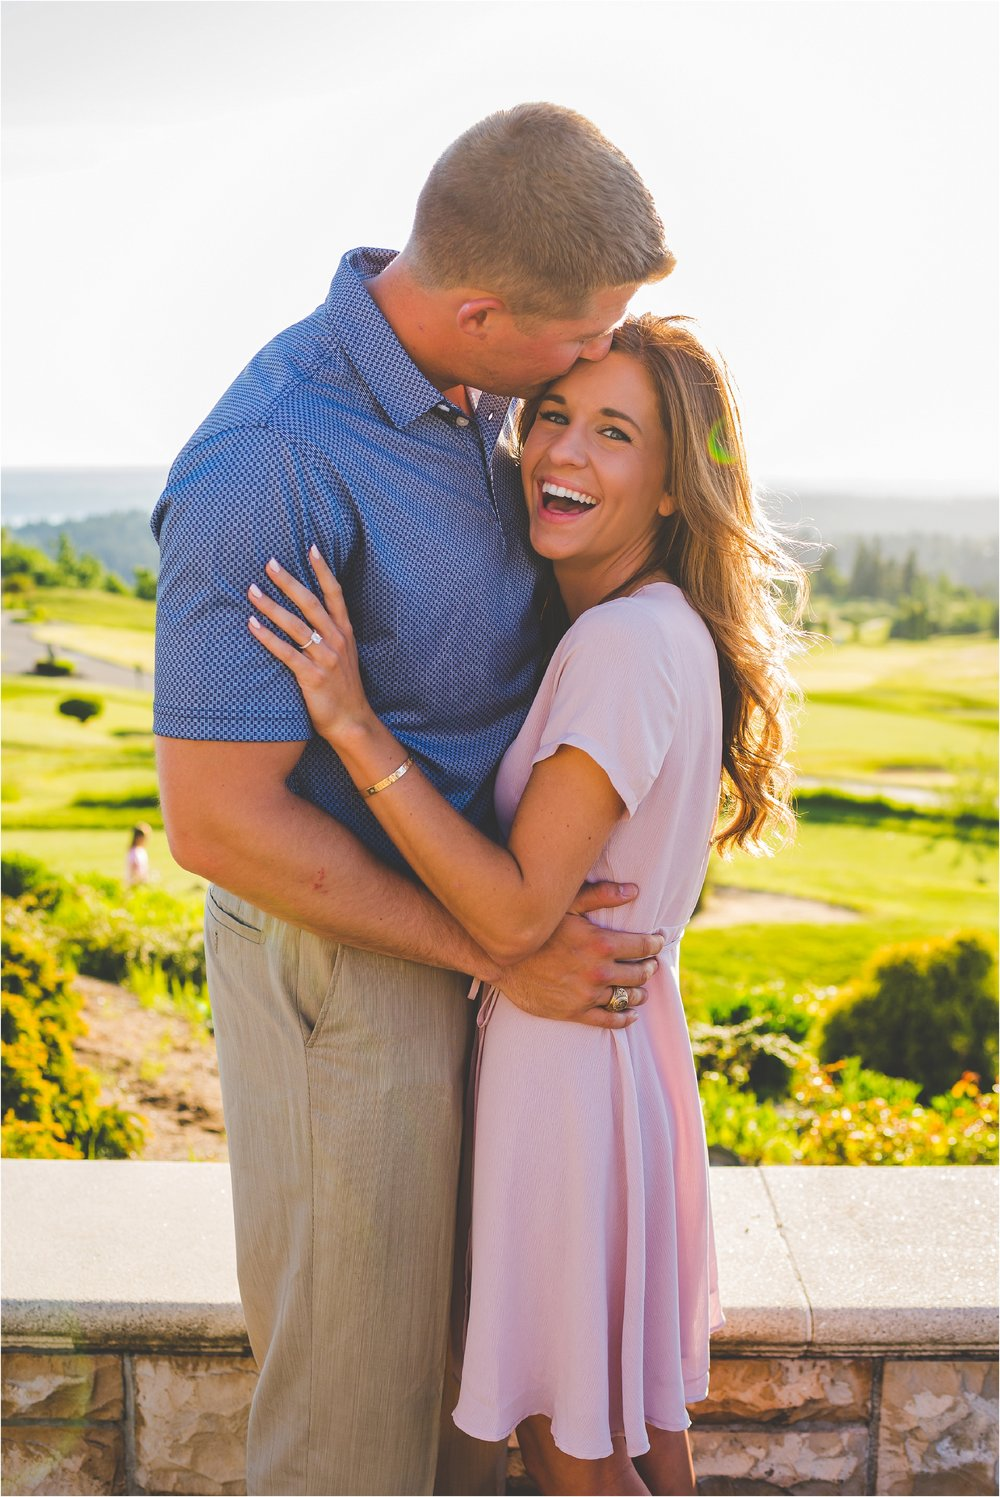 newcastle-golf-club-proposal-jannicka-mayte-seattle-washington-engagement-wedding-photographer_0035.jpg